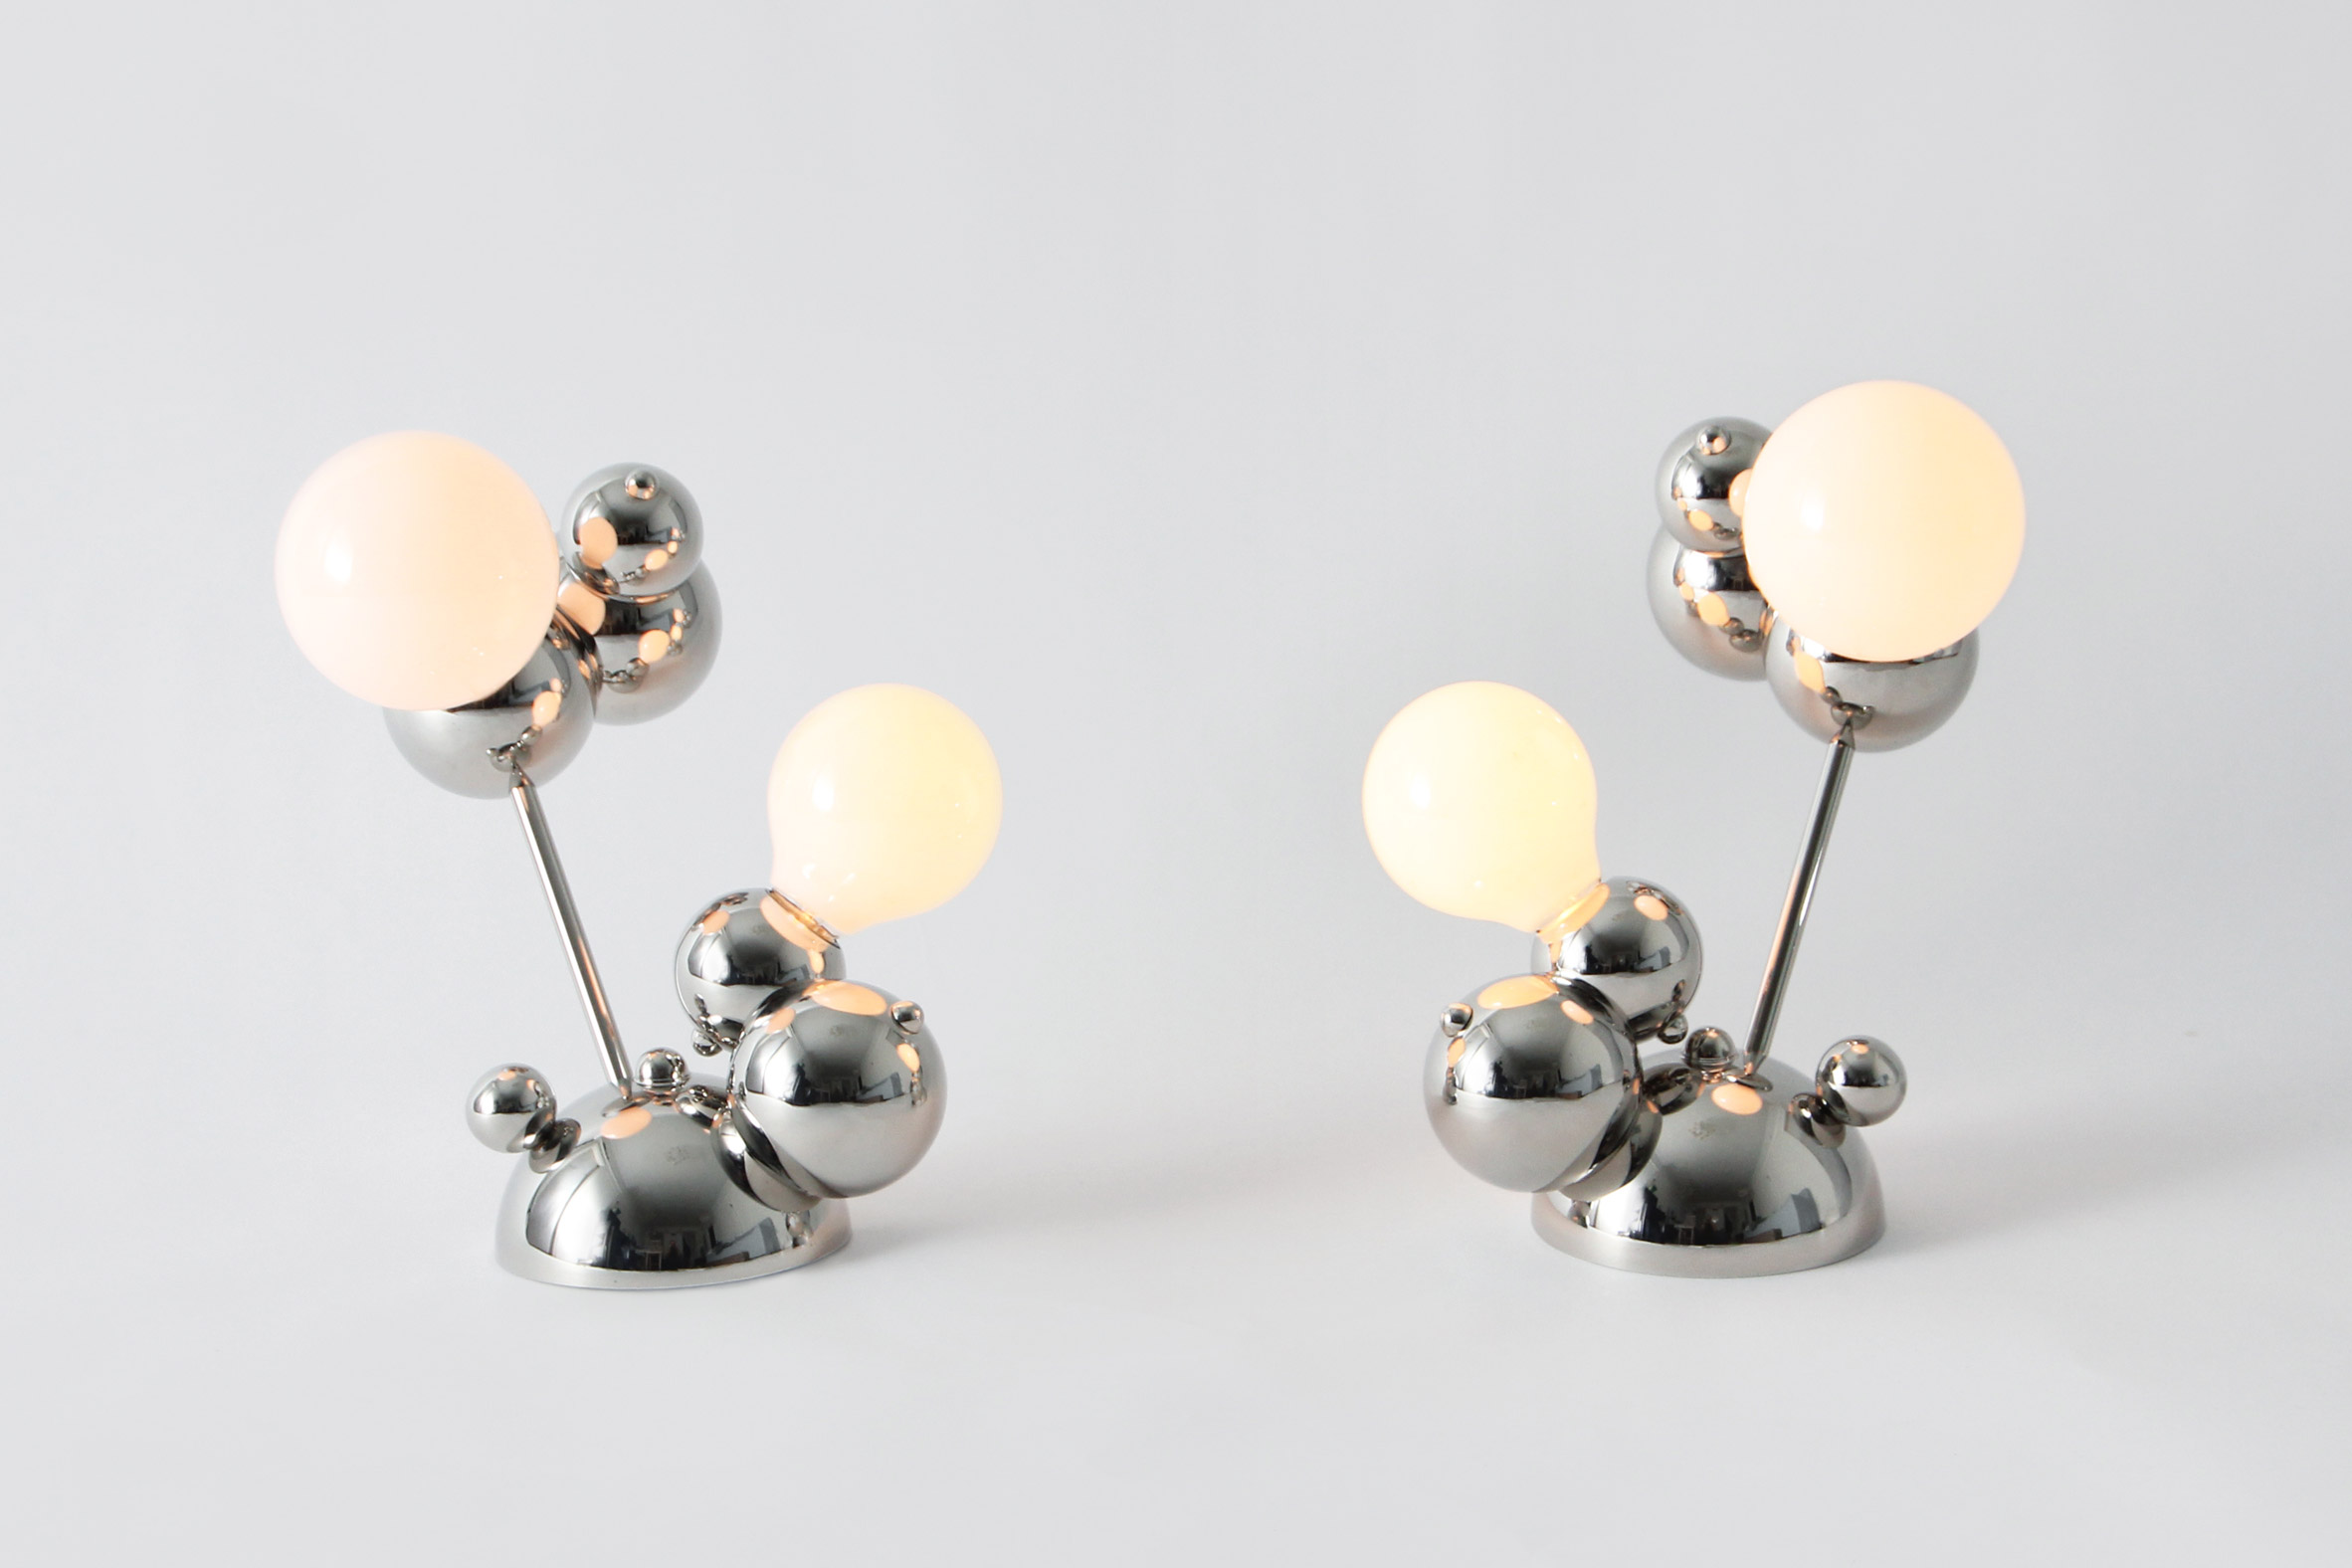 News Flash Bubble Shaped Lighting Collection By Rosie Li 6 bubble shaped lighting News Flash : Bubble Shaped Lighting Collection By Rosie Li News Flash Bubble Shaped Lighting Collection By Rosie Li 6